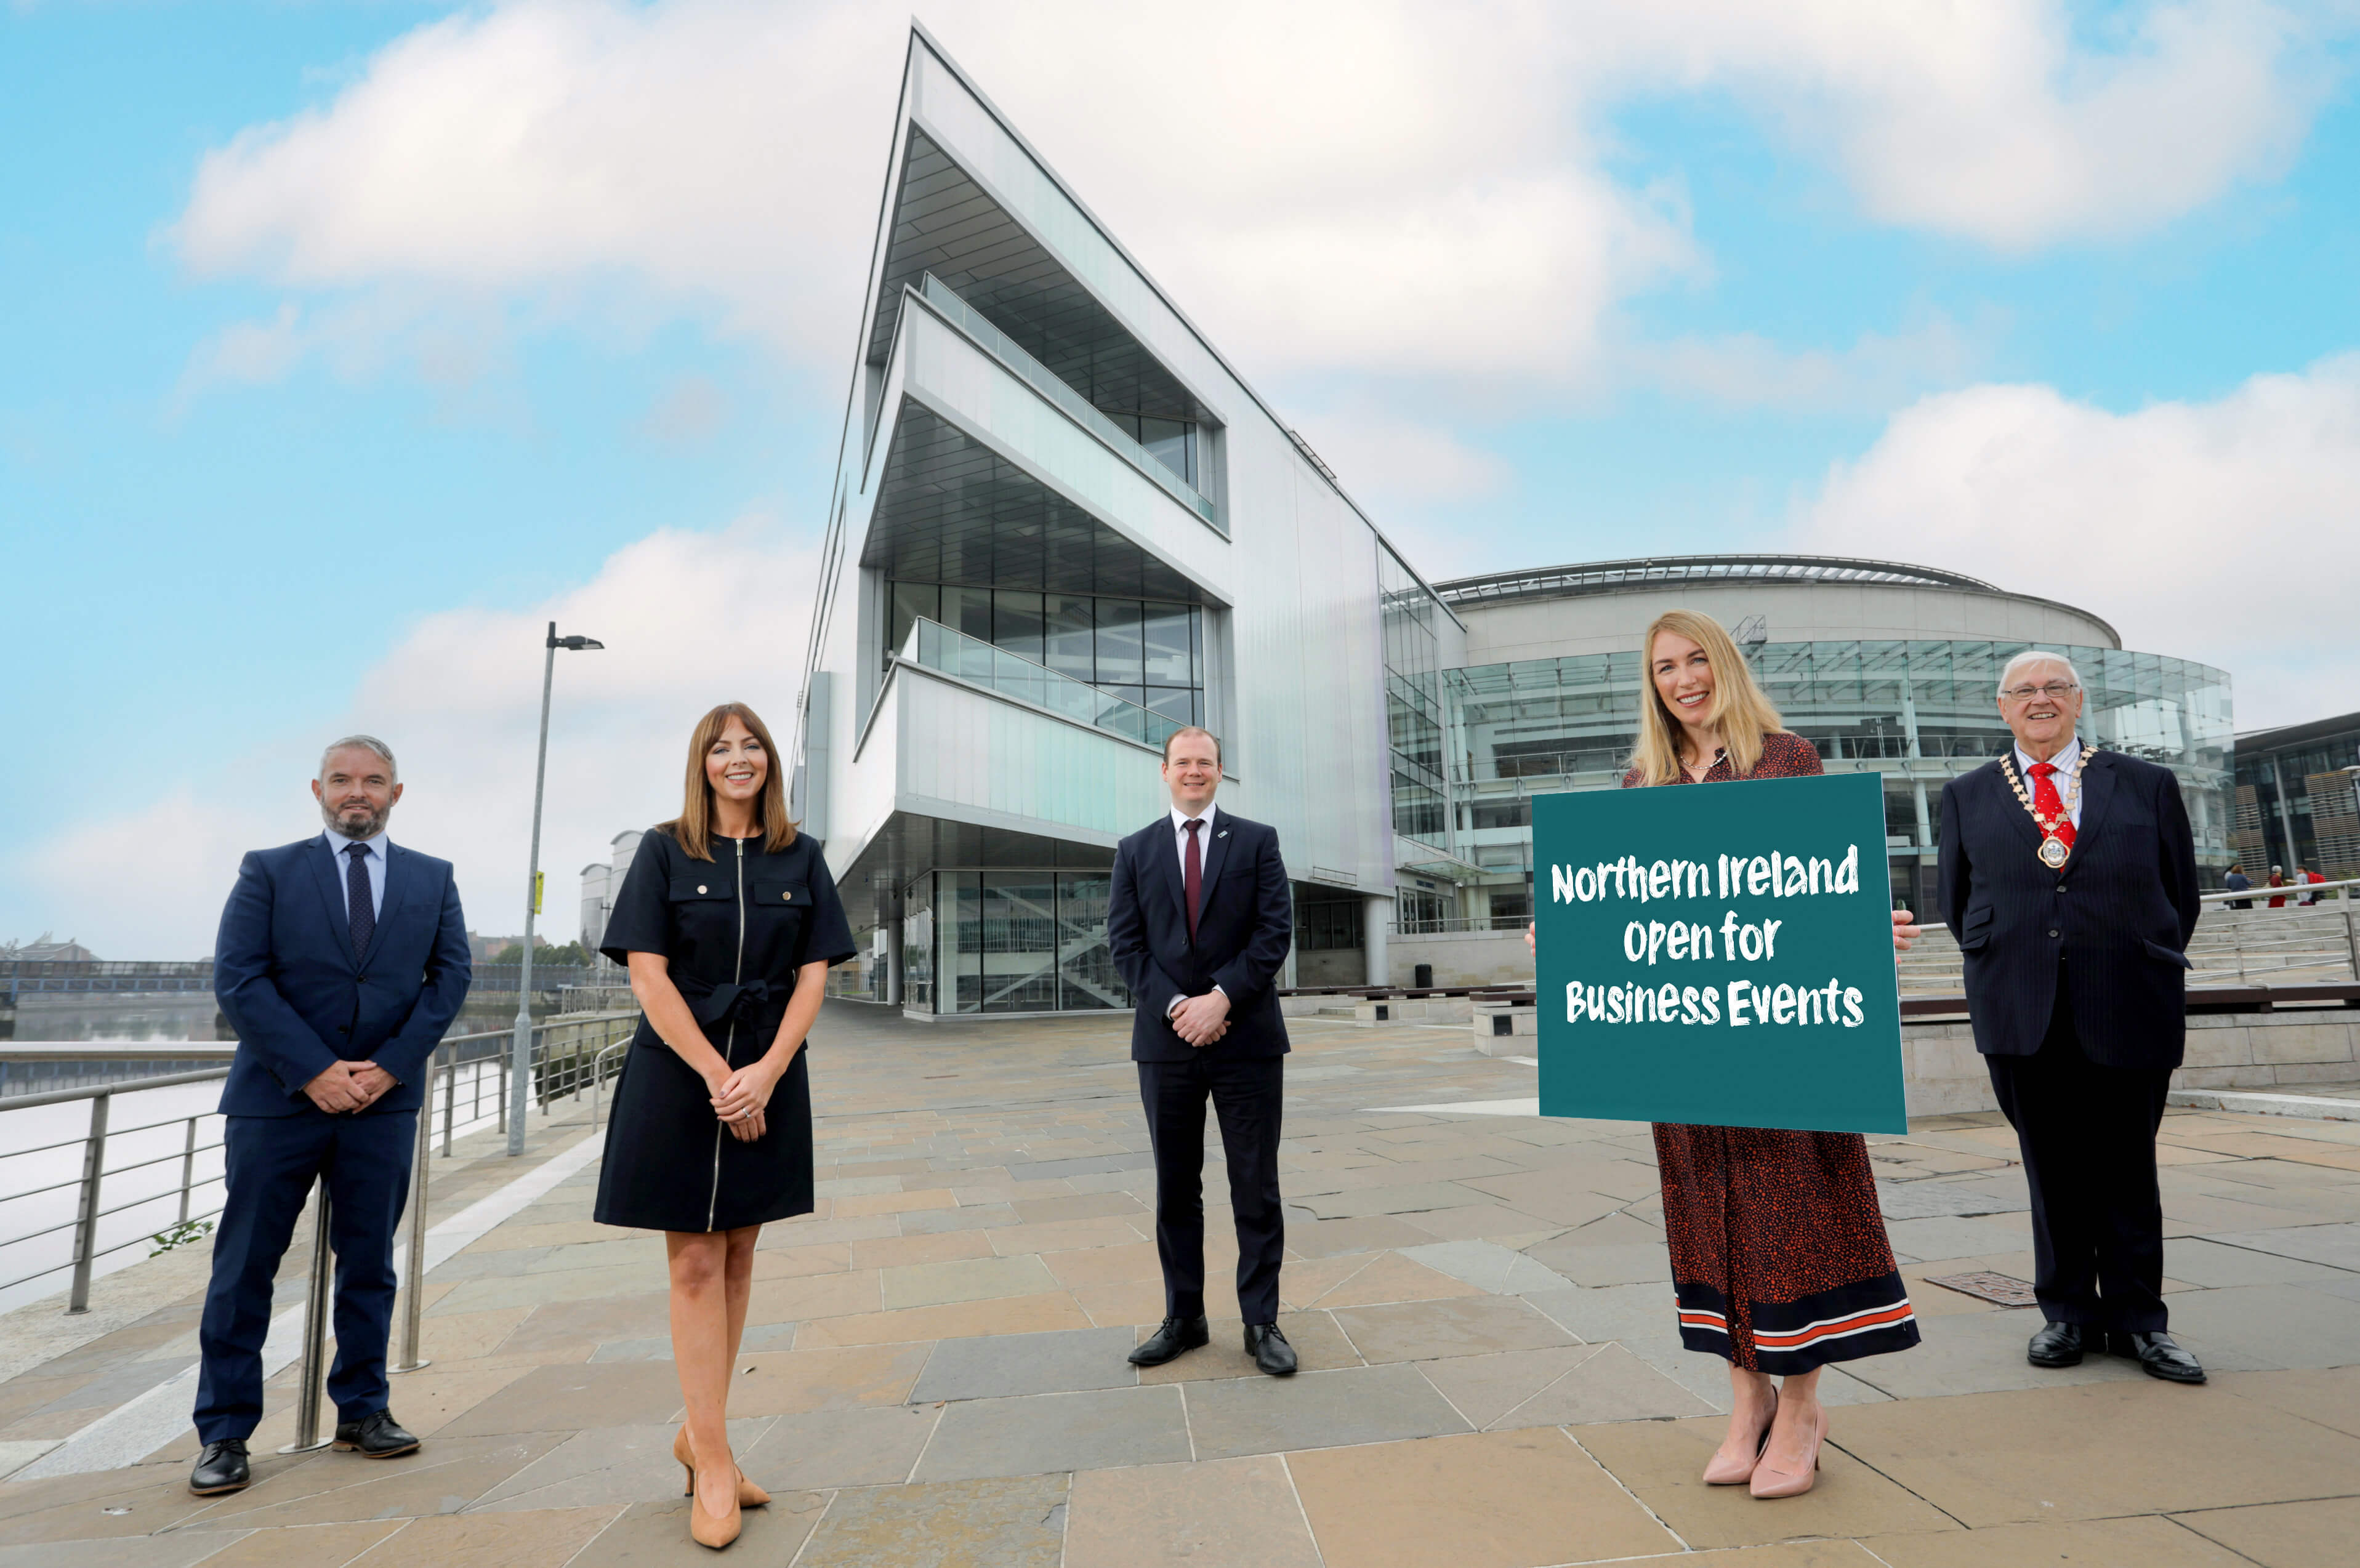 Northern Ireland unveils £1m conference support scheme in major boost to business events